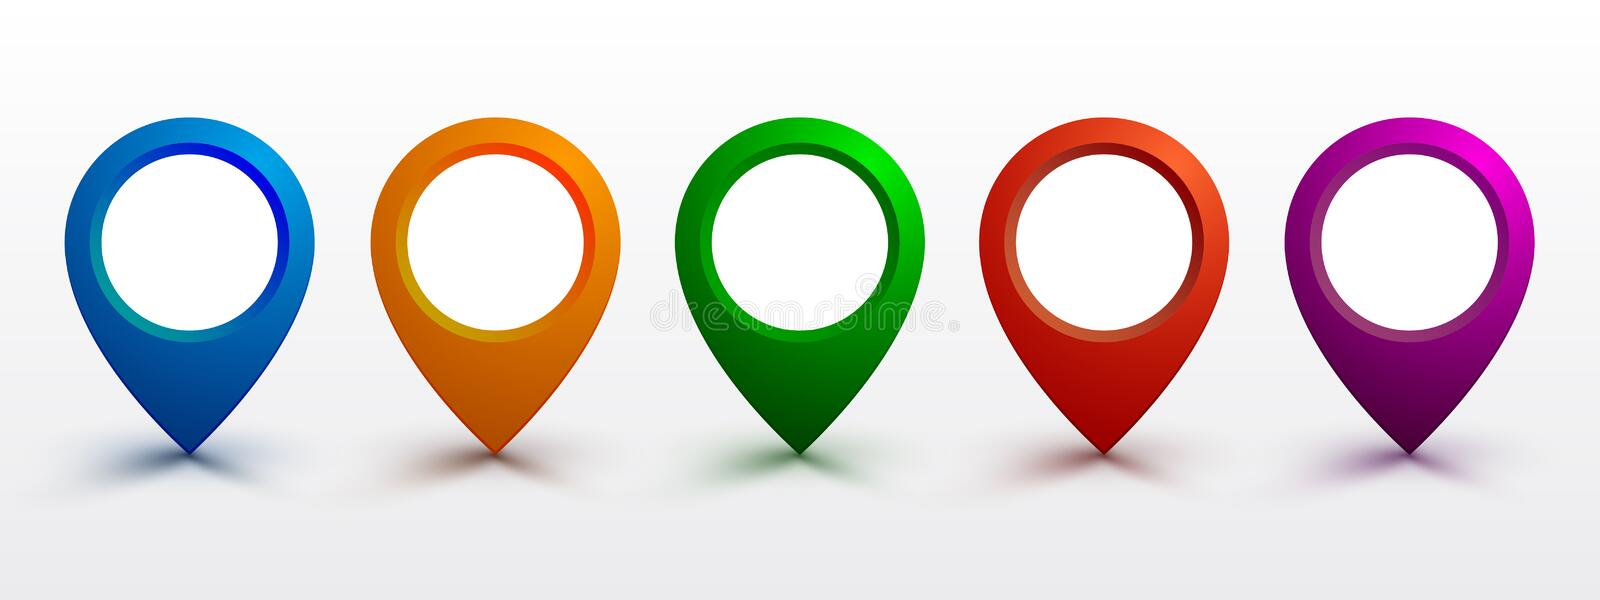 Set pin map marker pointer icon, GPS location flat symbol. – vector royalty free illustration